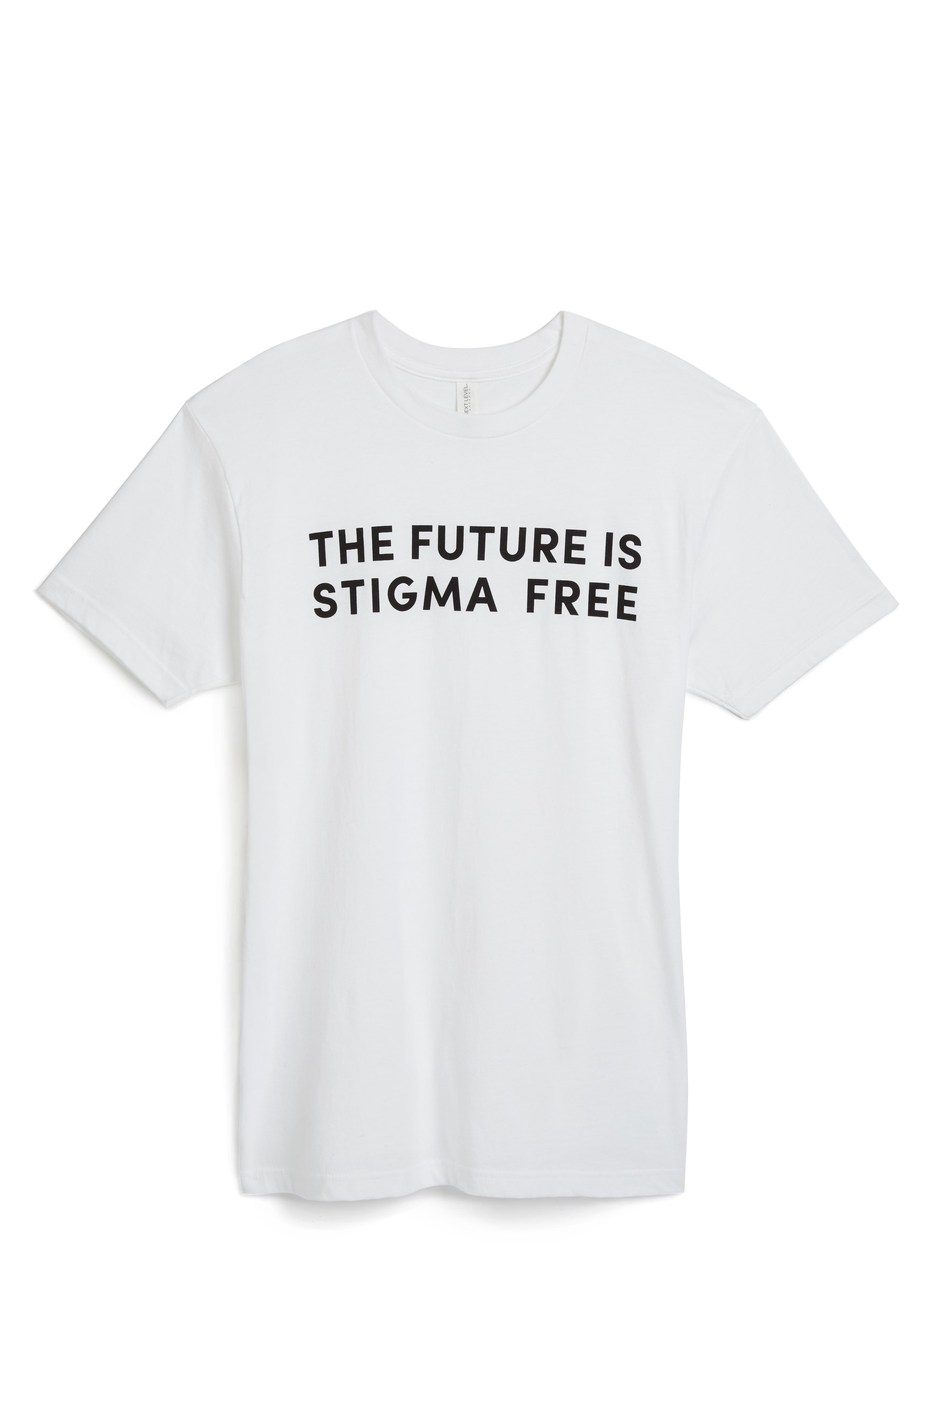 "Hudson's Bay launches 'The Future is Stigma Free"" campaign (CNW Group/Hudson's Bay)"